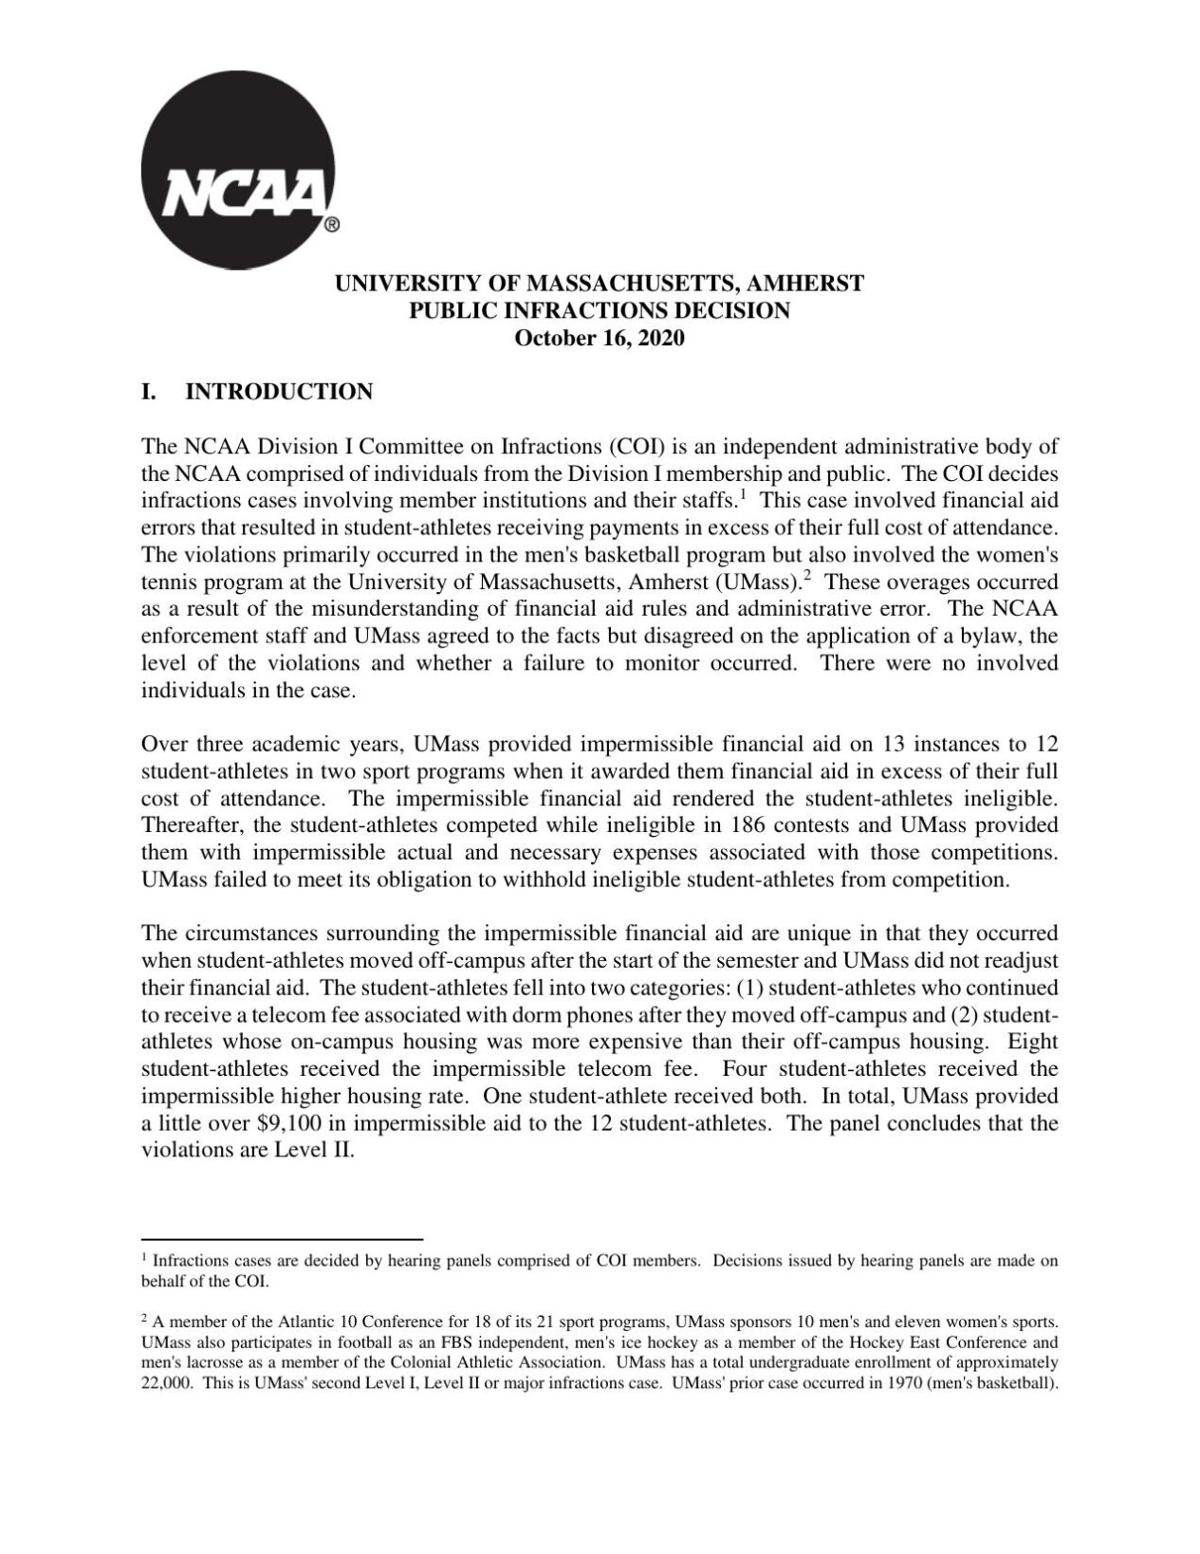 NCAA UMass report